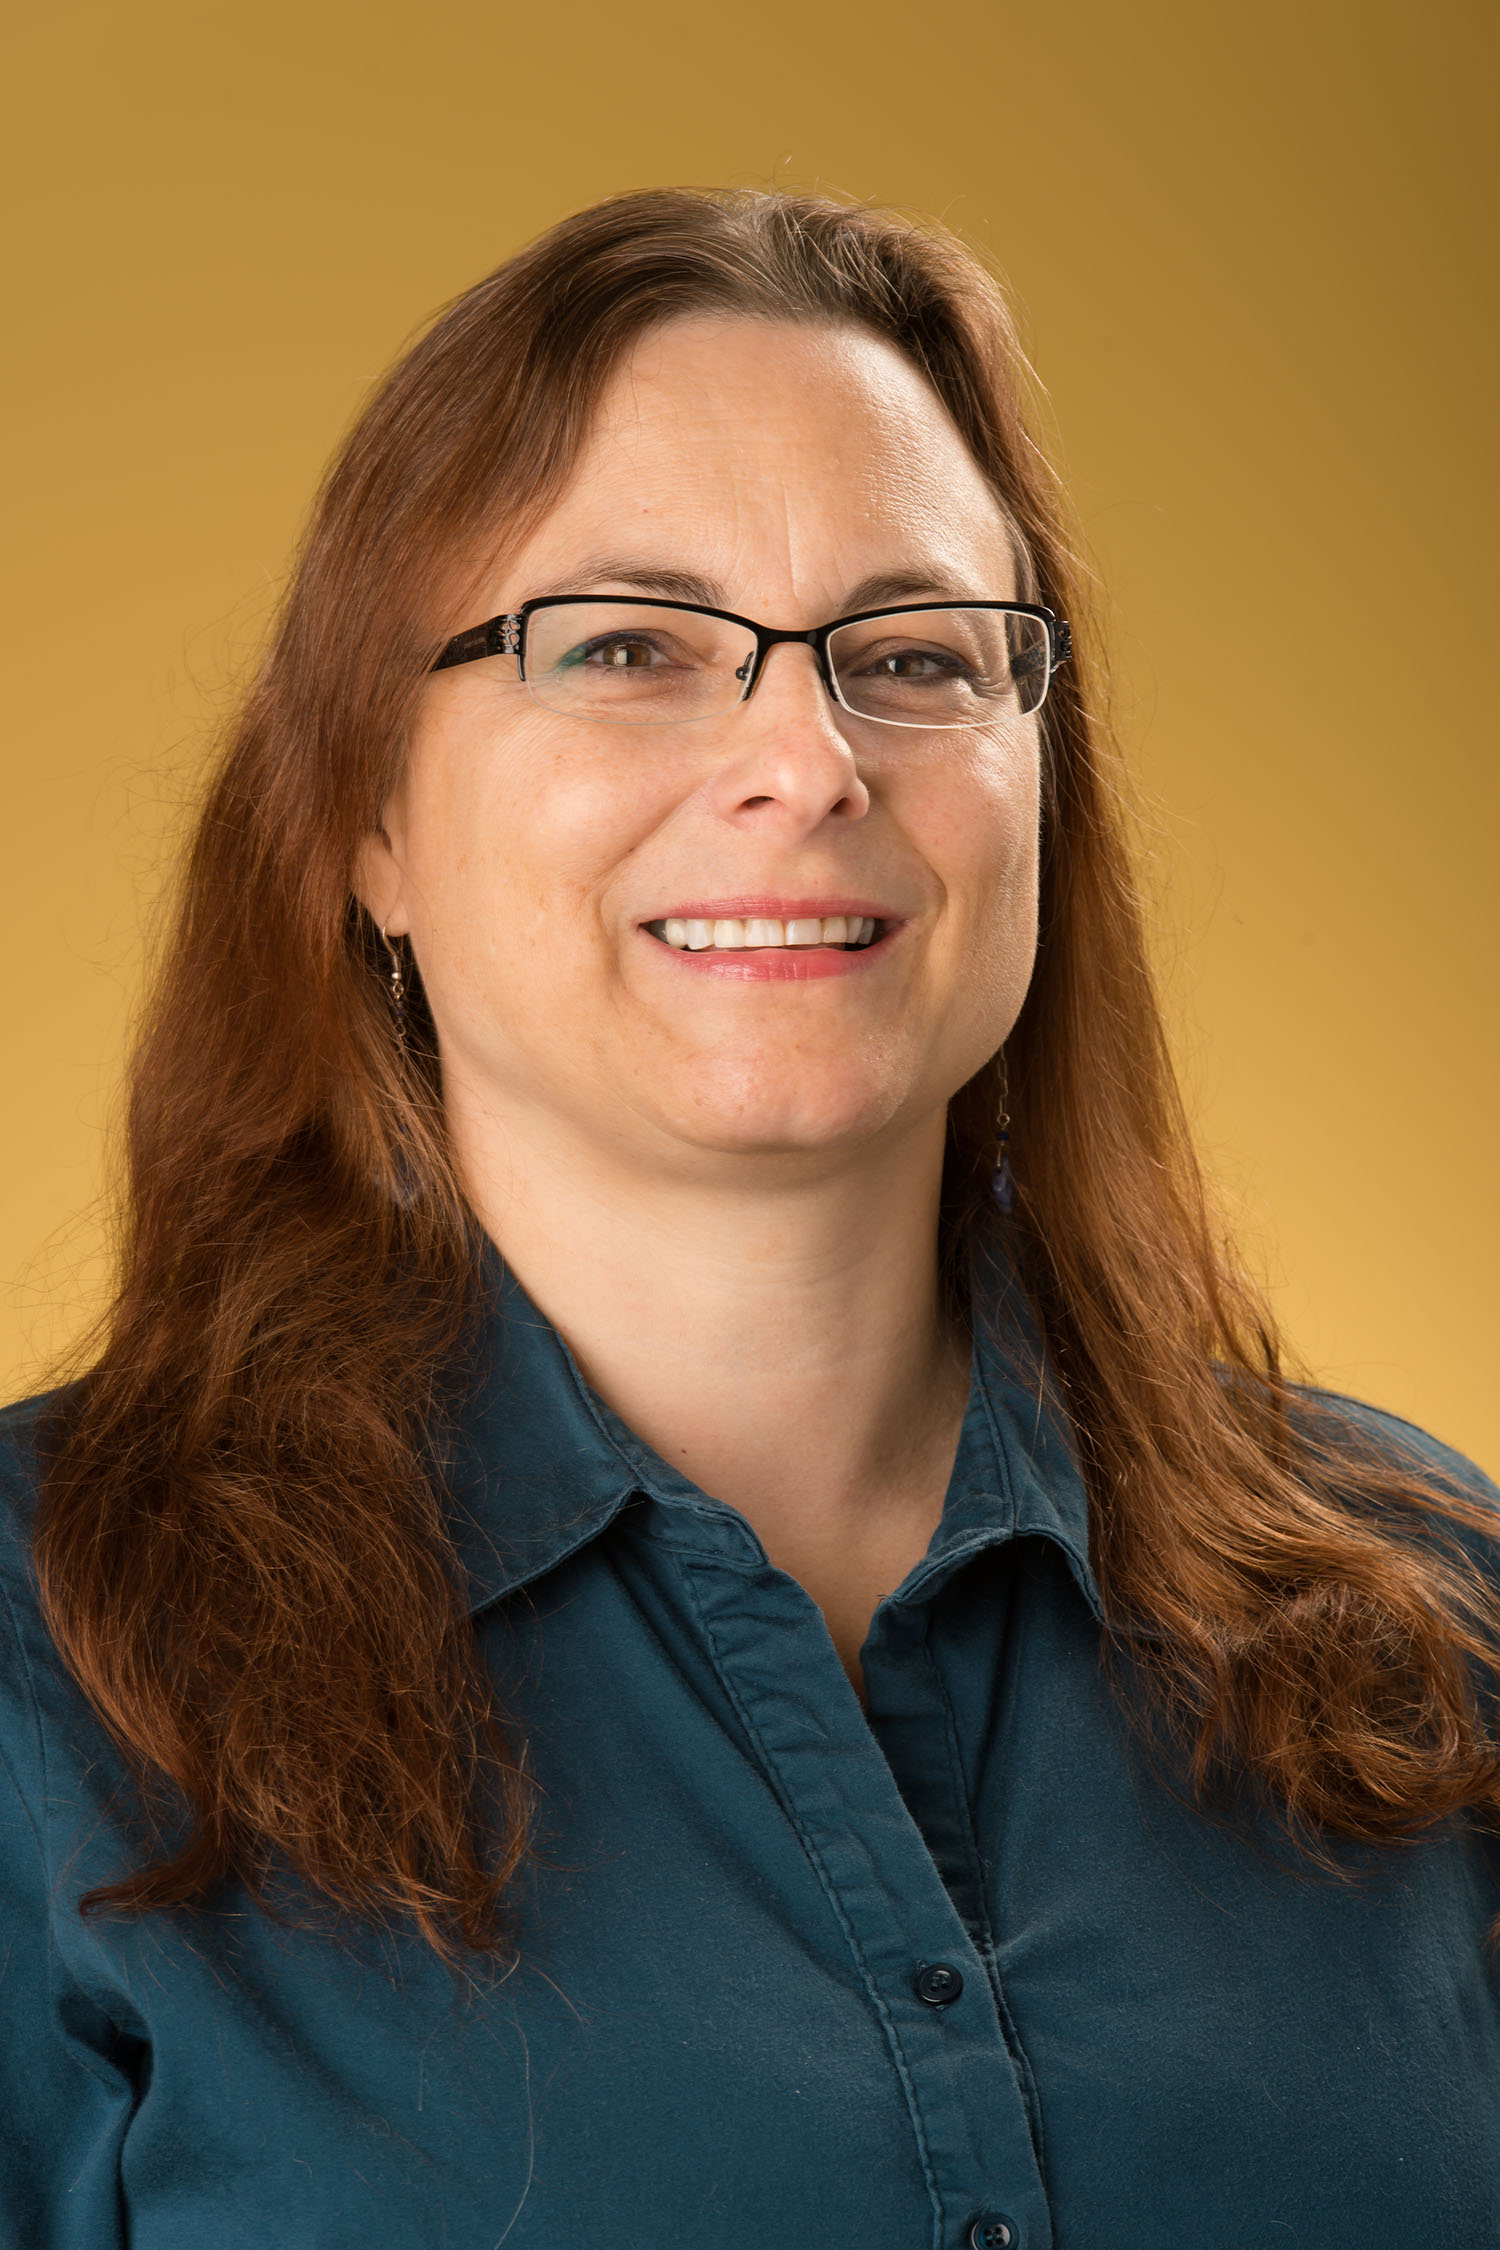 Profile photo of Leslie Drost